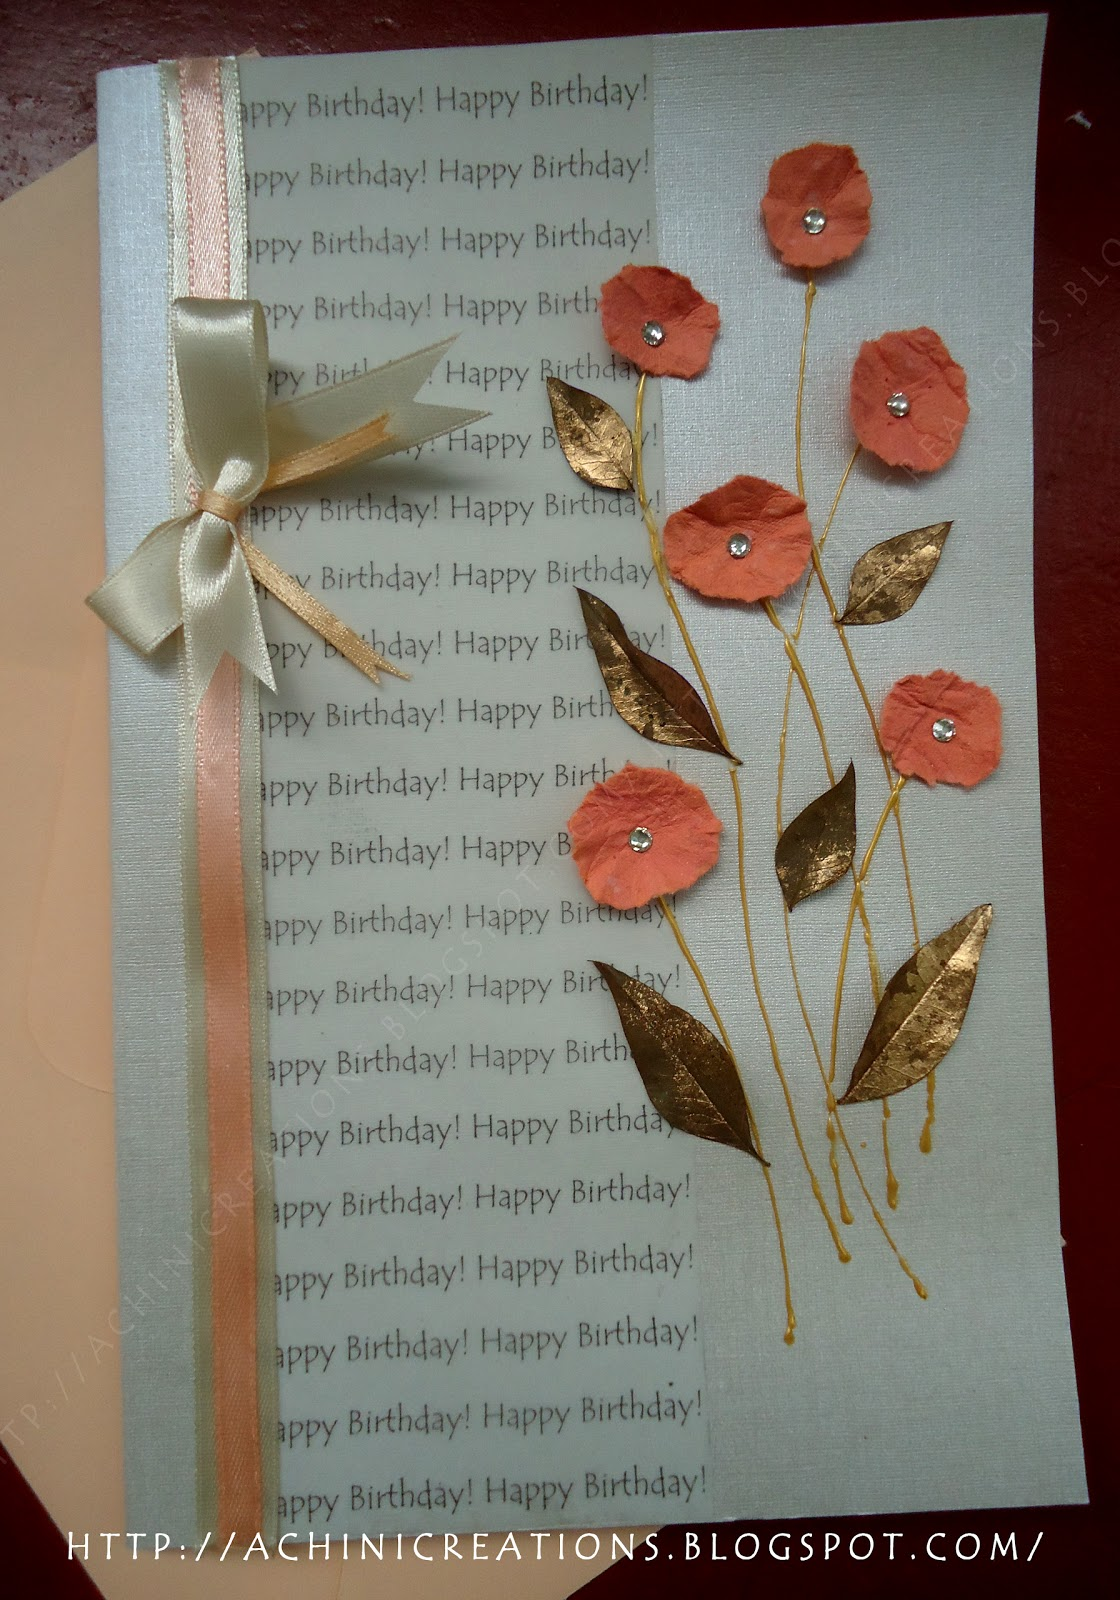 Achini Creations Handmade Greeting Cards Simple Birthday Card For A